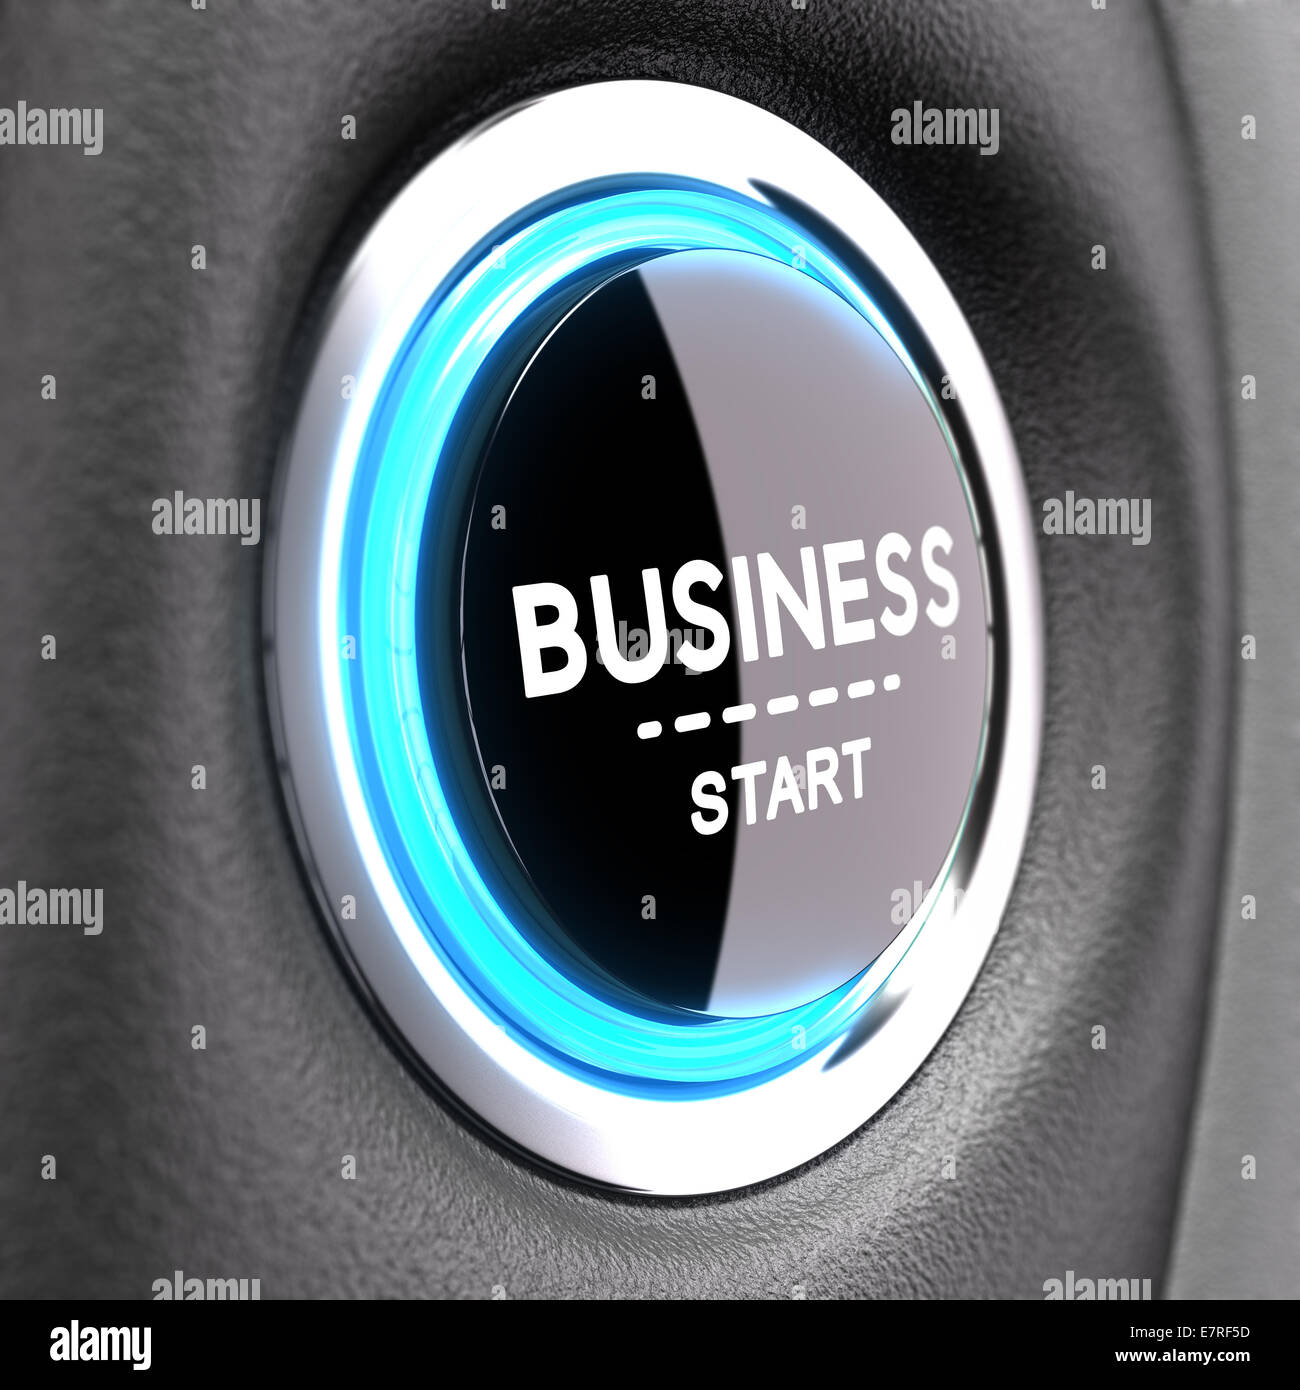 Blue Push button with the phrase business start. Concept image to illustrate new business - Stock Image